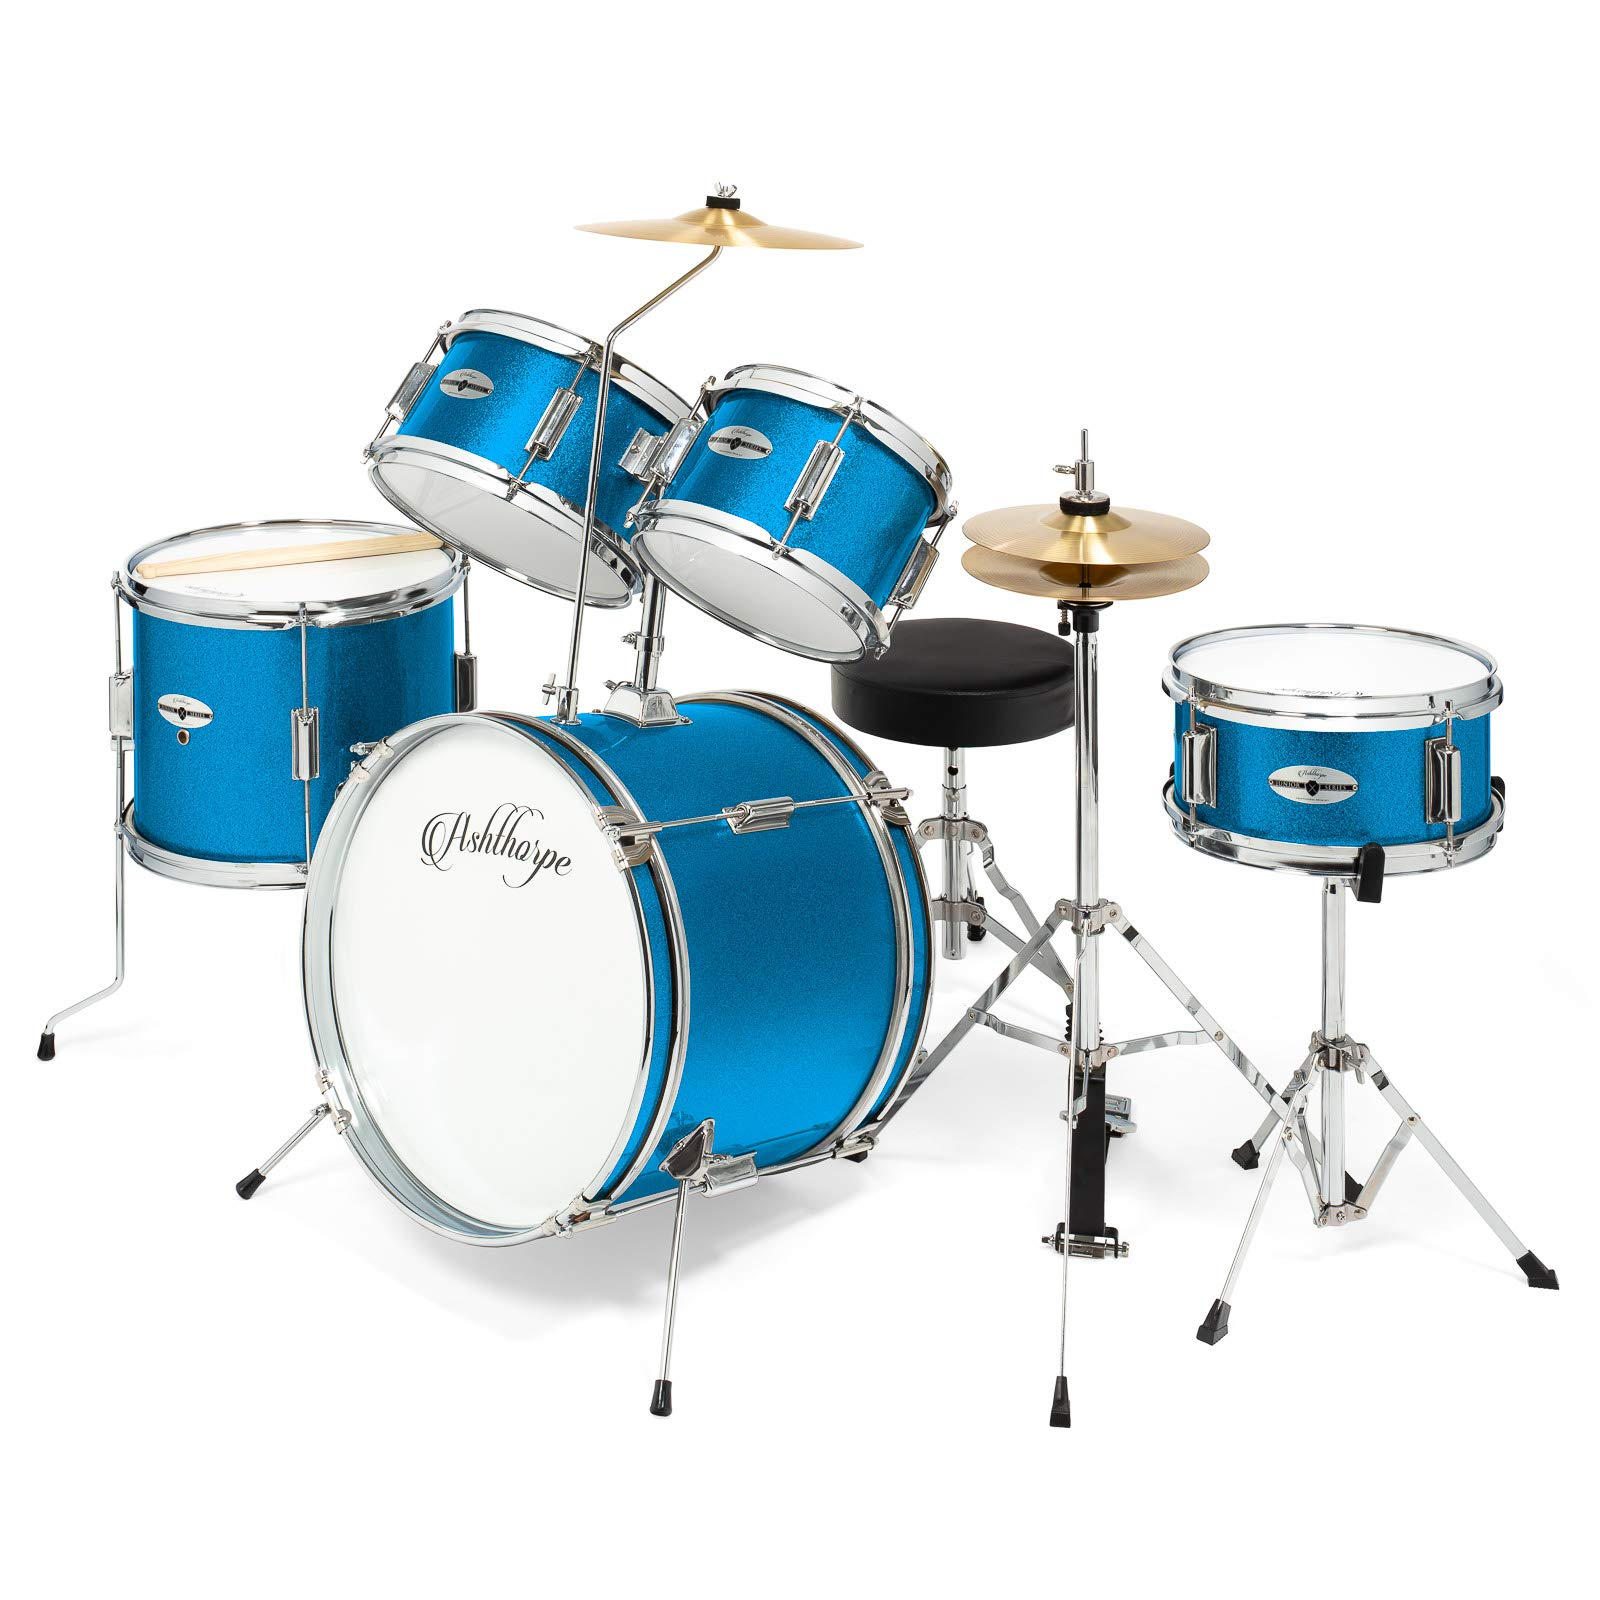 Ashthorpe 5-Piece Complete Kid's Junior Drum Set with Genuine Brass Cymbals - Children's Advanced Beginner Kit with 16'' Bass, Adjustable Throne, Cymbals, Hi-Hats, Pedals & Drumsticks - Blue by Ashthorpe (Image #1)